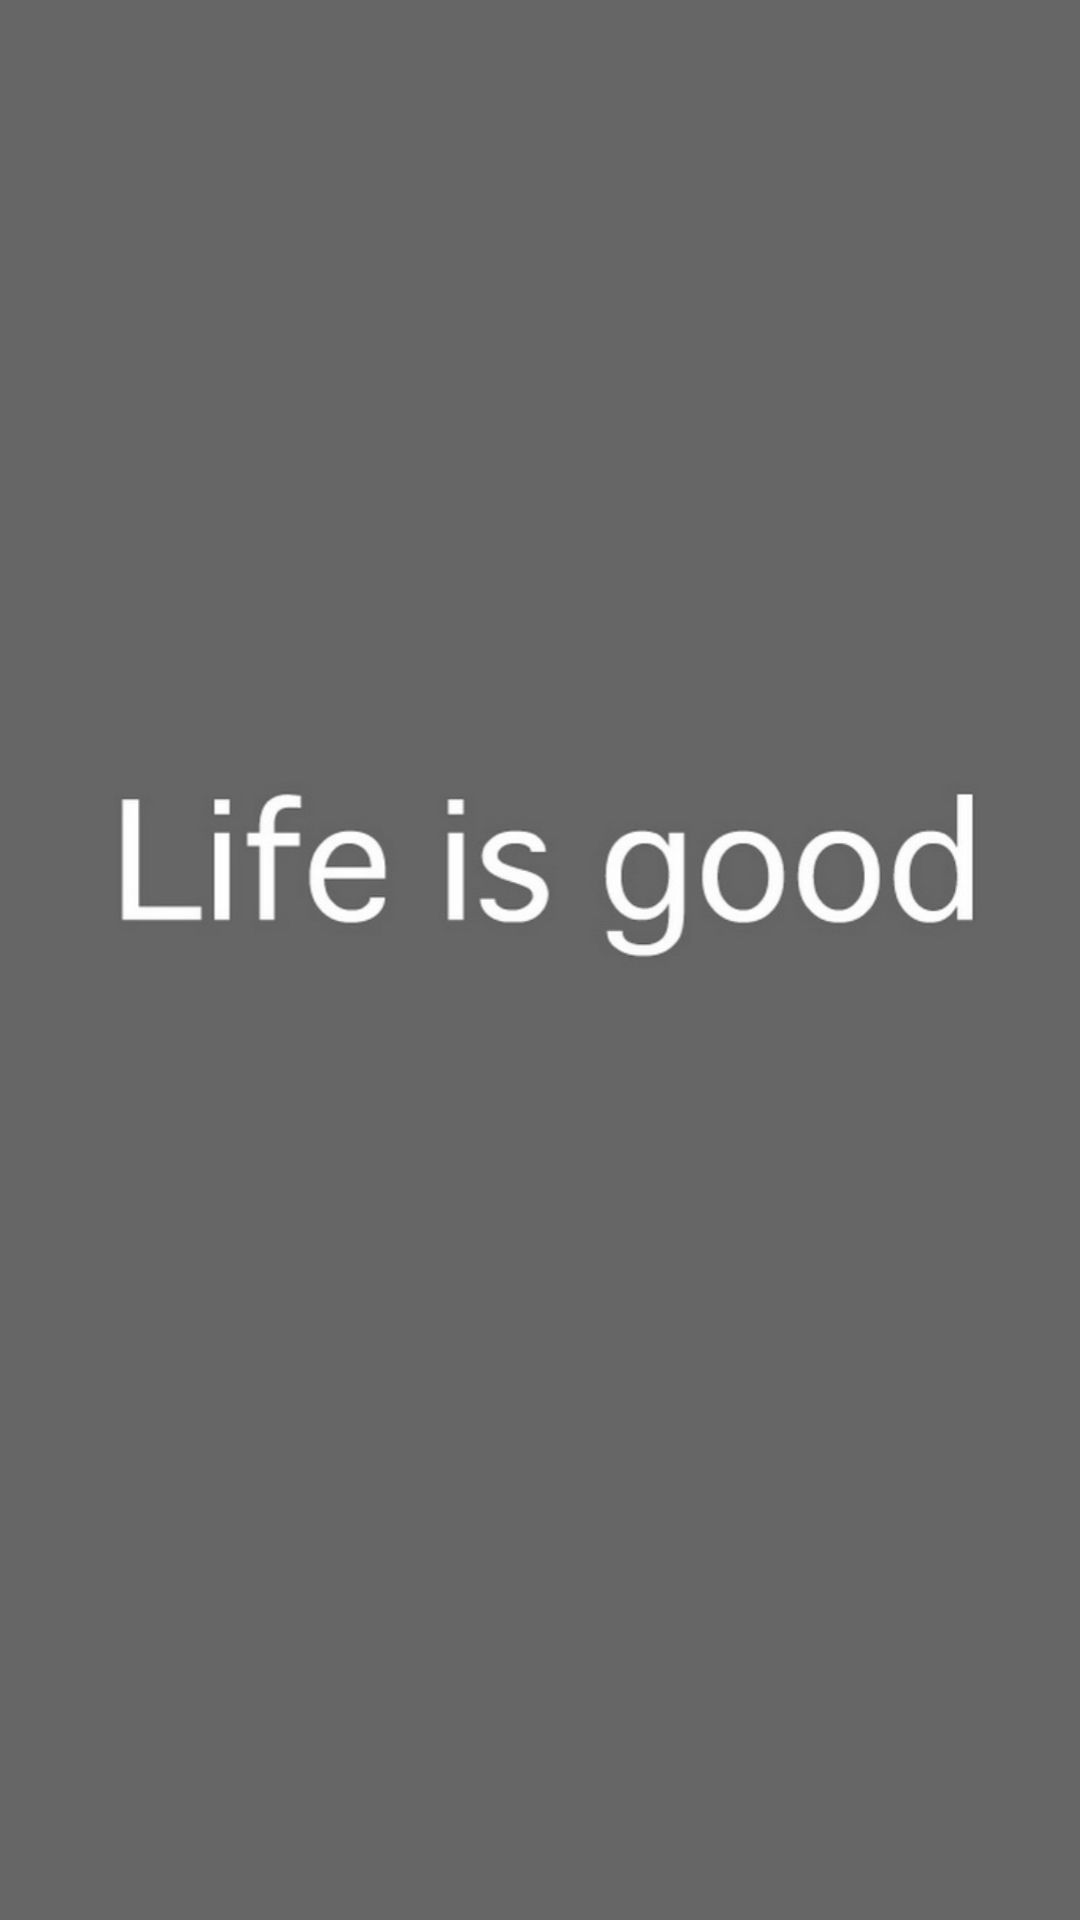 Life Is Good Iphone Wallpapers Top Free Life Is Good